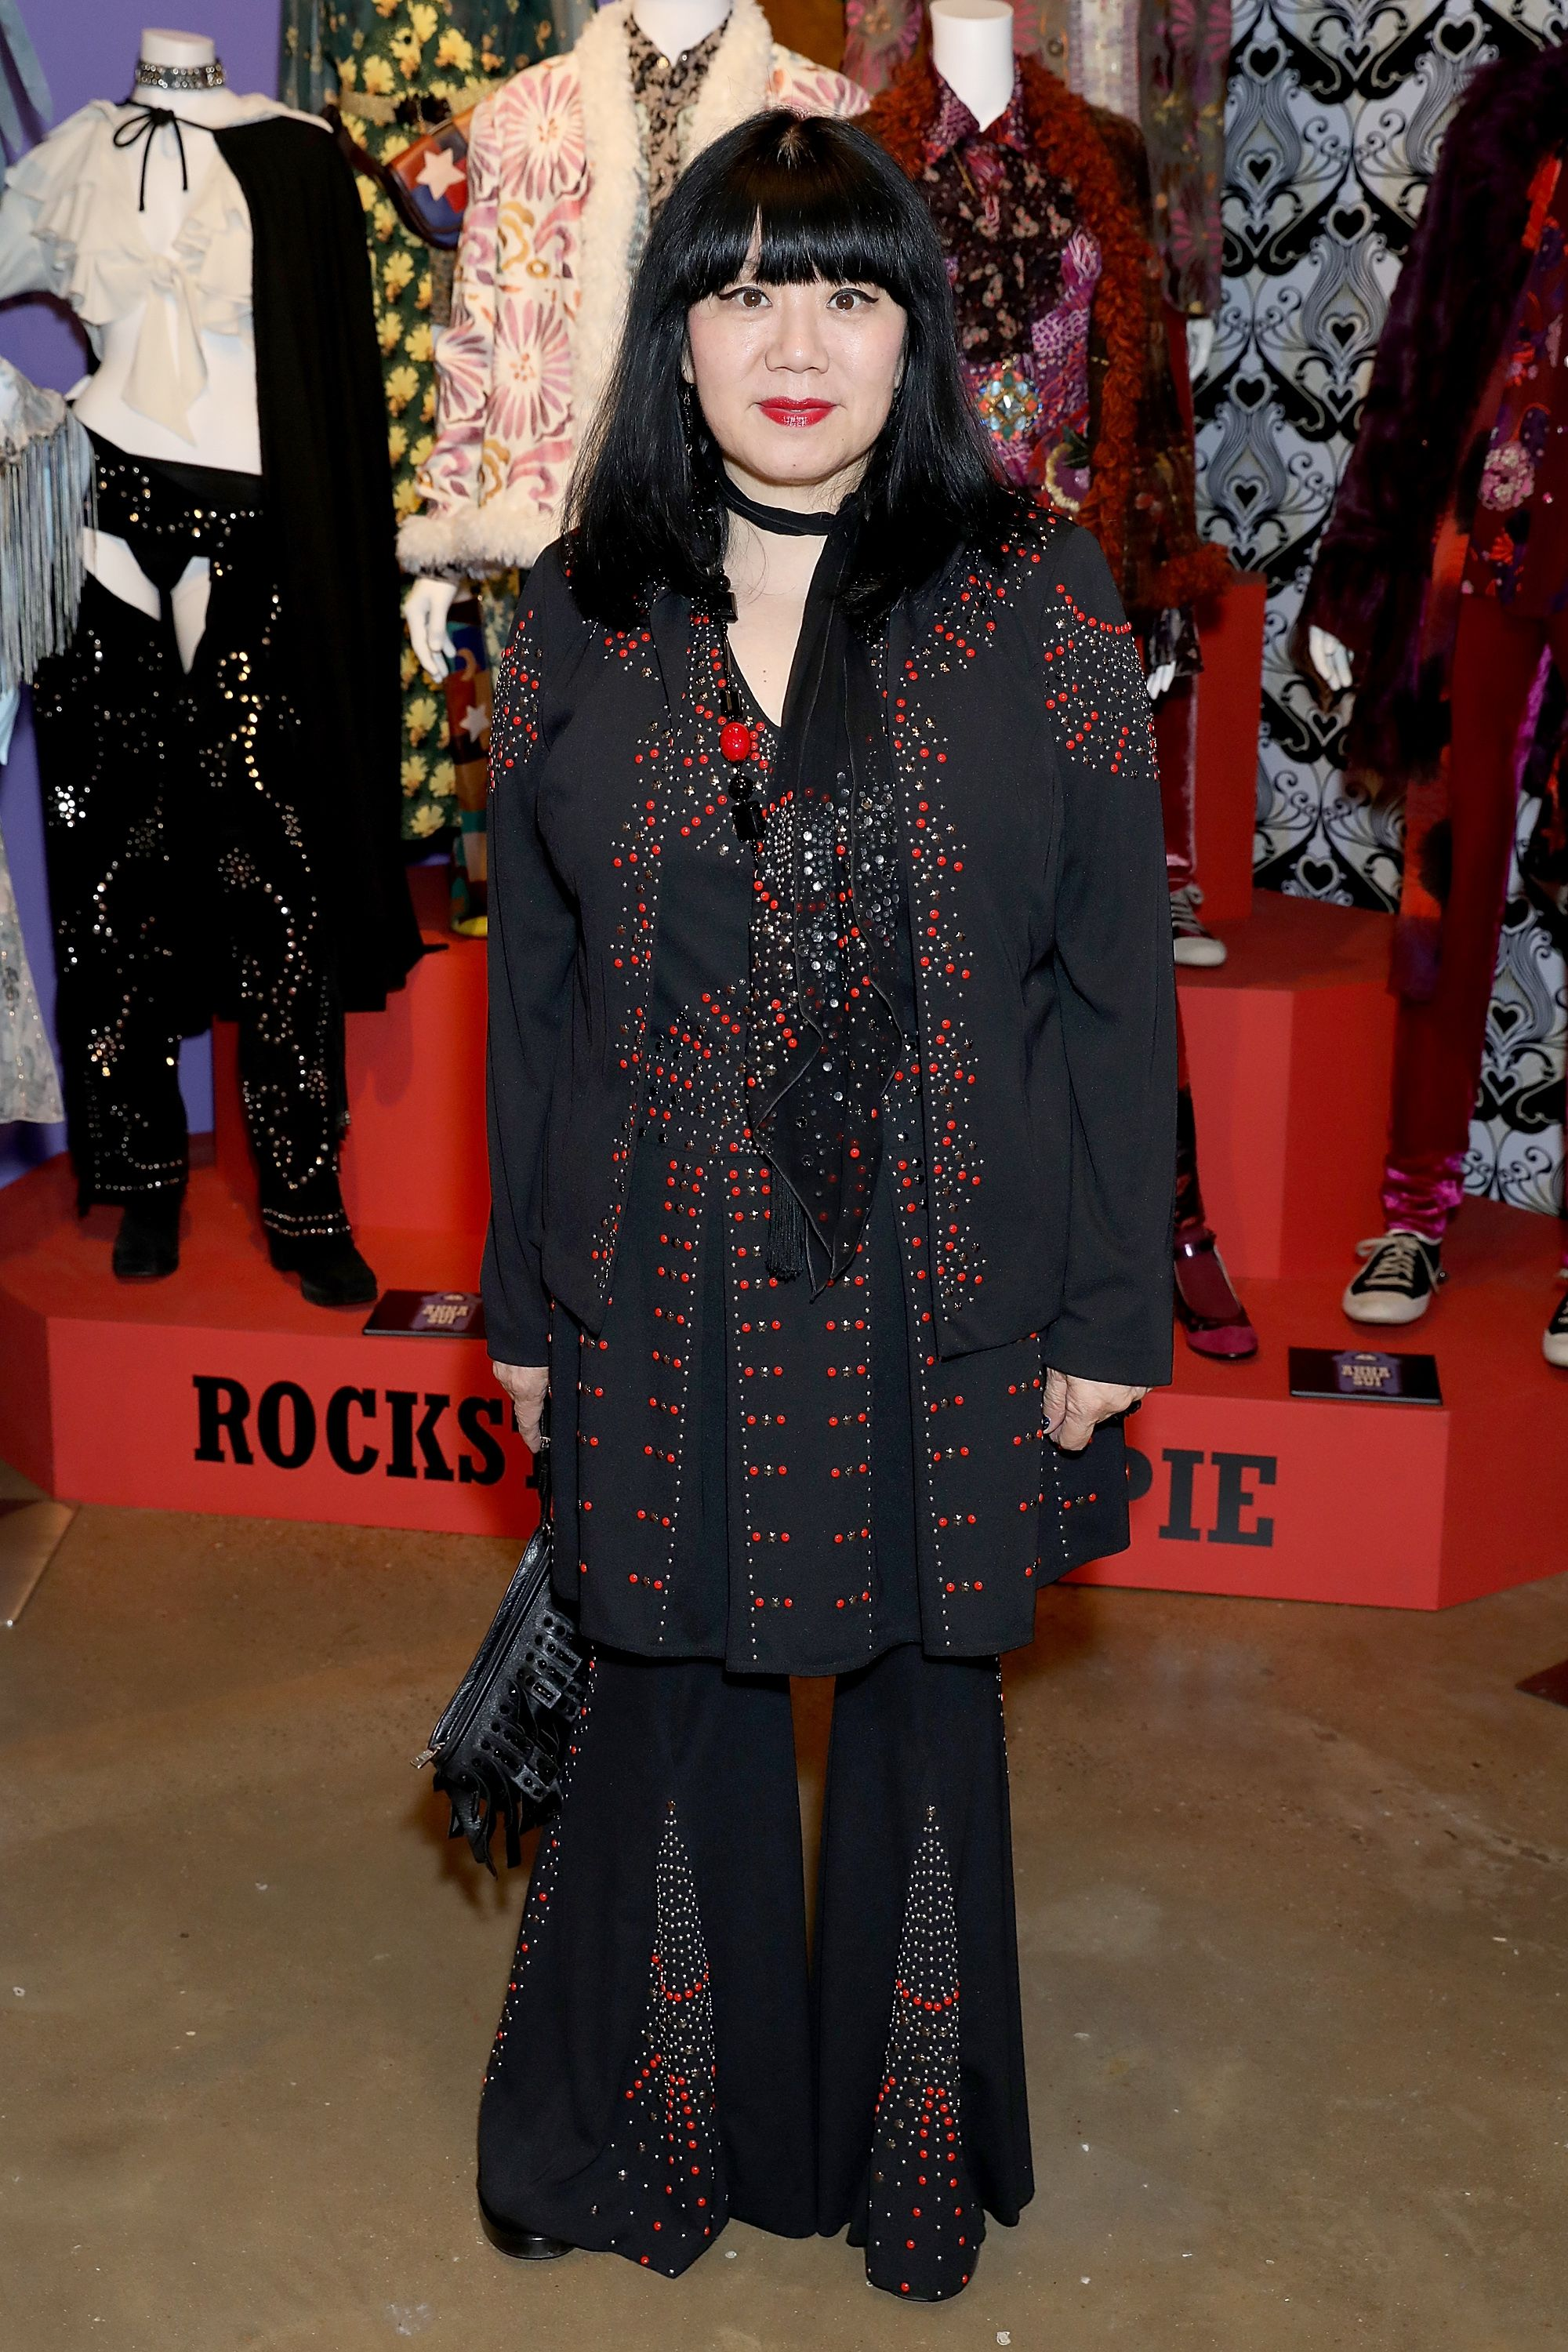 """<p>At the World of Anna Sui Exhibition: Private View at the Fashion and Textile Museum on May 25, 2017 in London<span class=""""redactor-invisible-space"""" data-verified=""""redactor"""" data-redactor-tag=""""span"""" data-redactor-class=""""redactor-invisible-space""""></span>.</p>"""